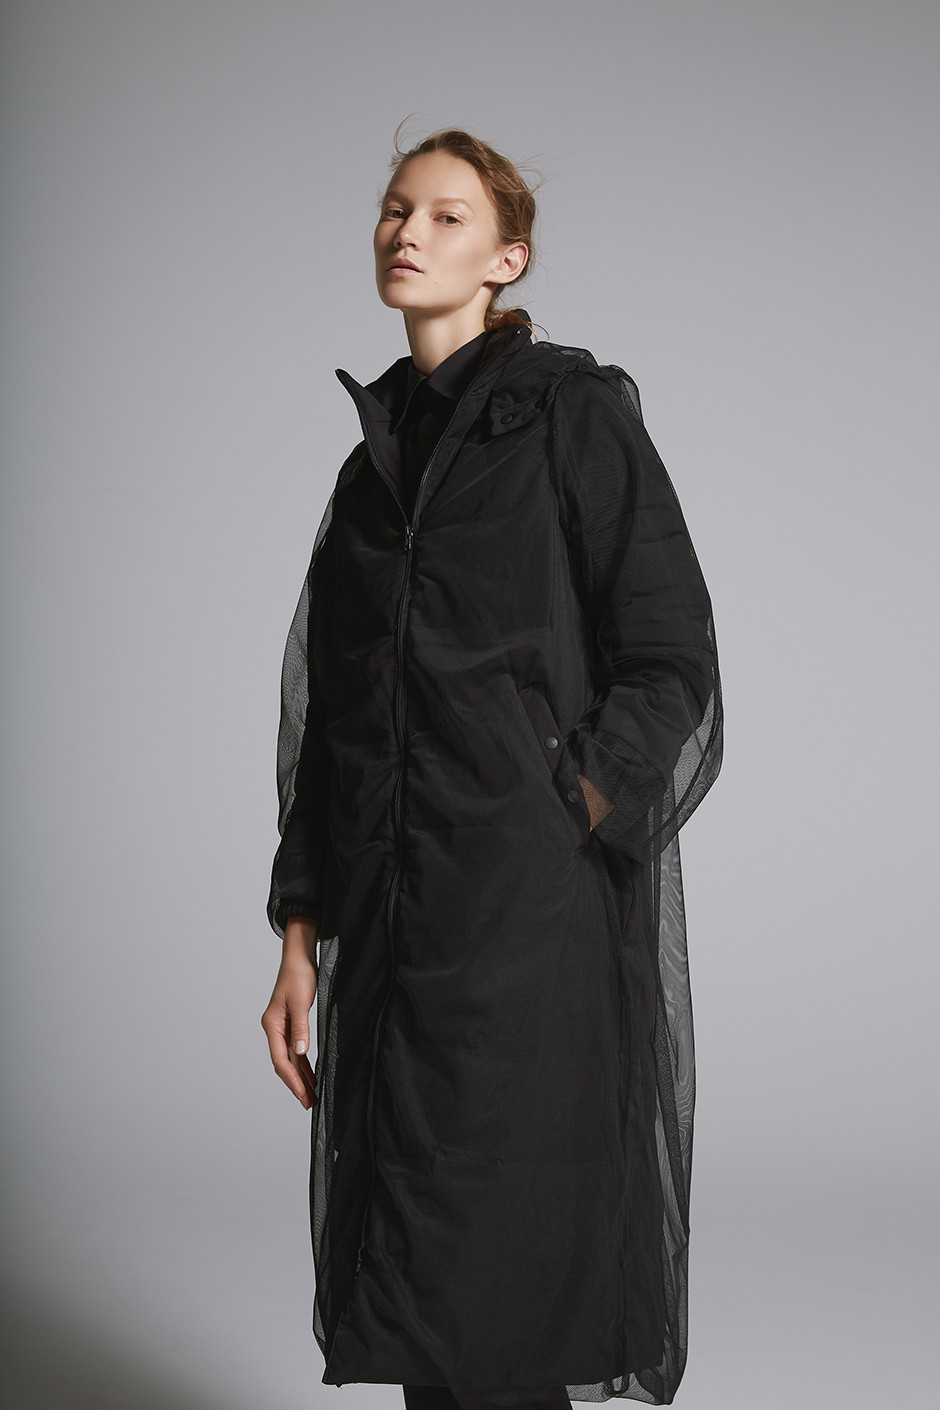 TULLE DOWN COAT DARK3733|COACH JACKET DARK3730